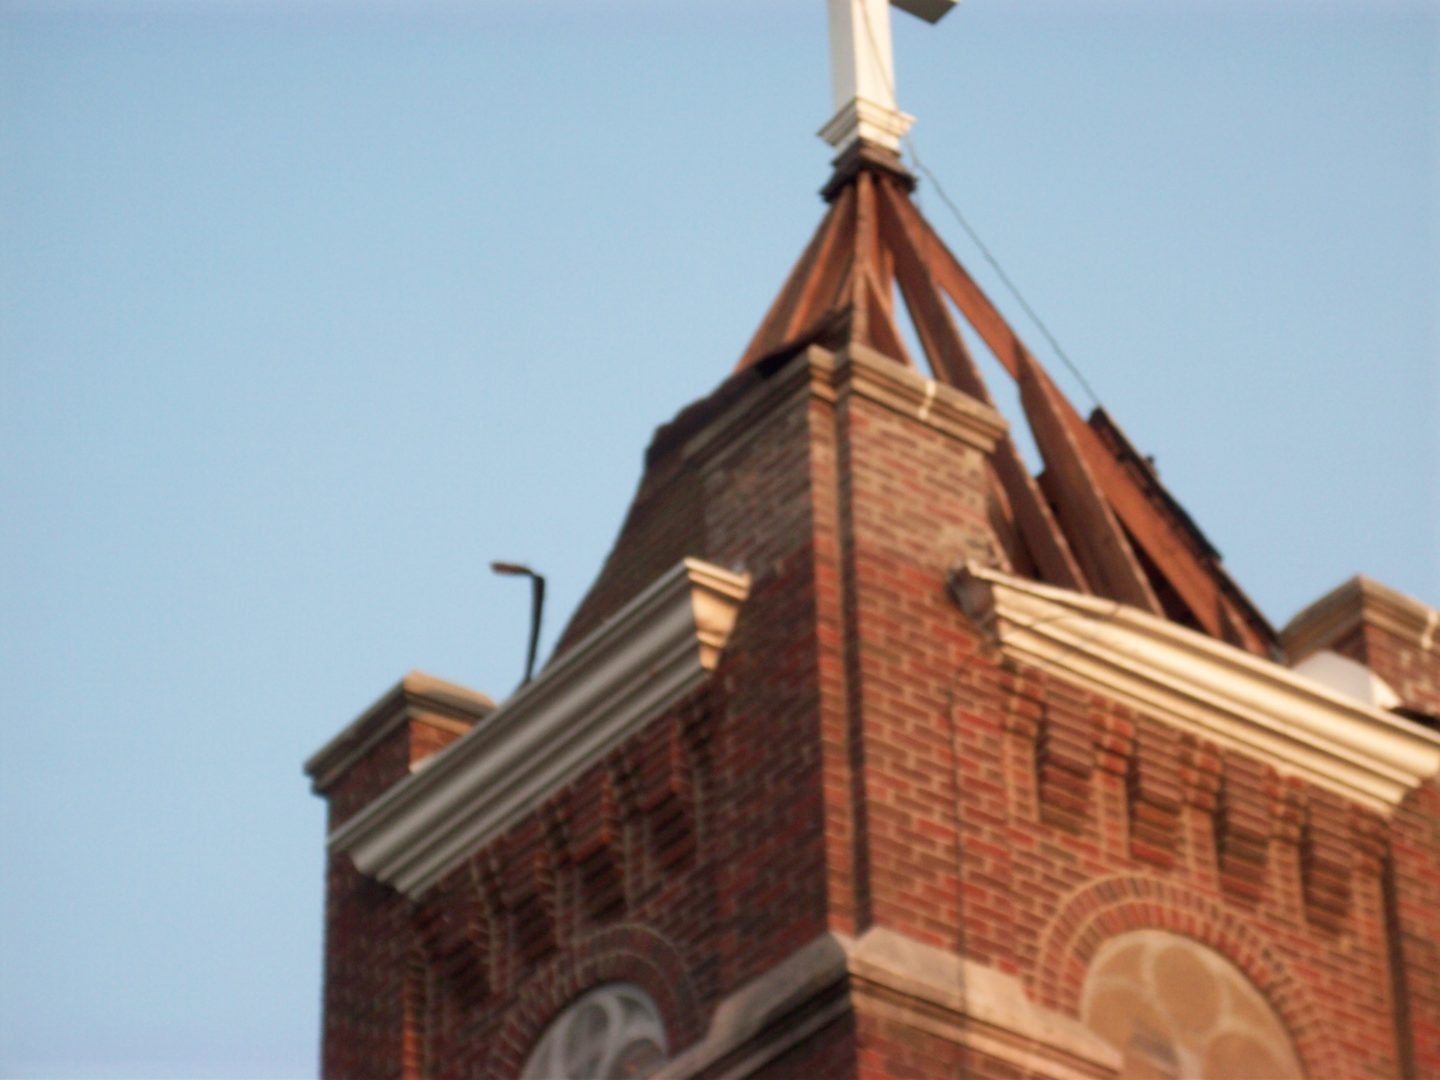 North steeple cap repaired